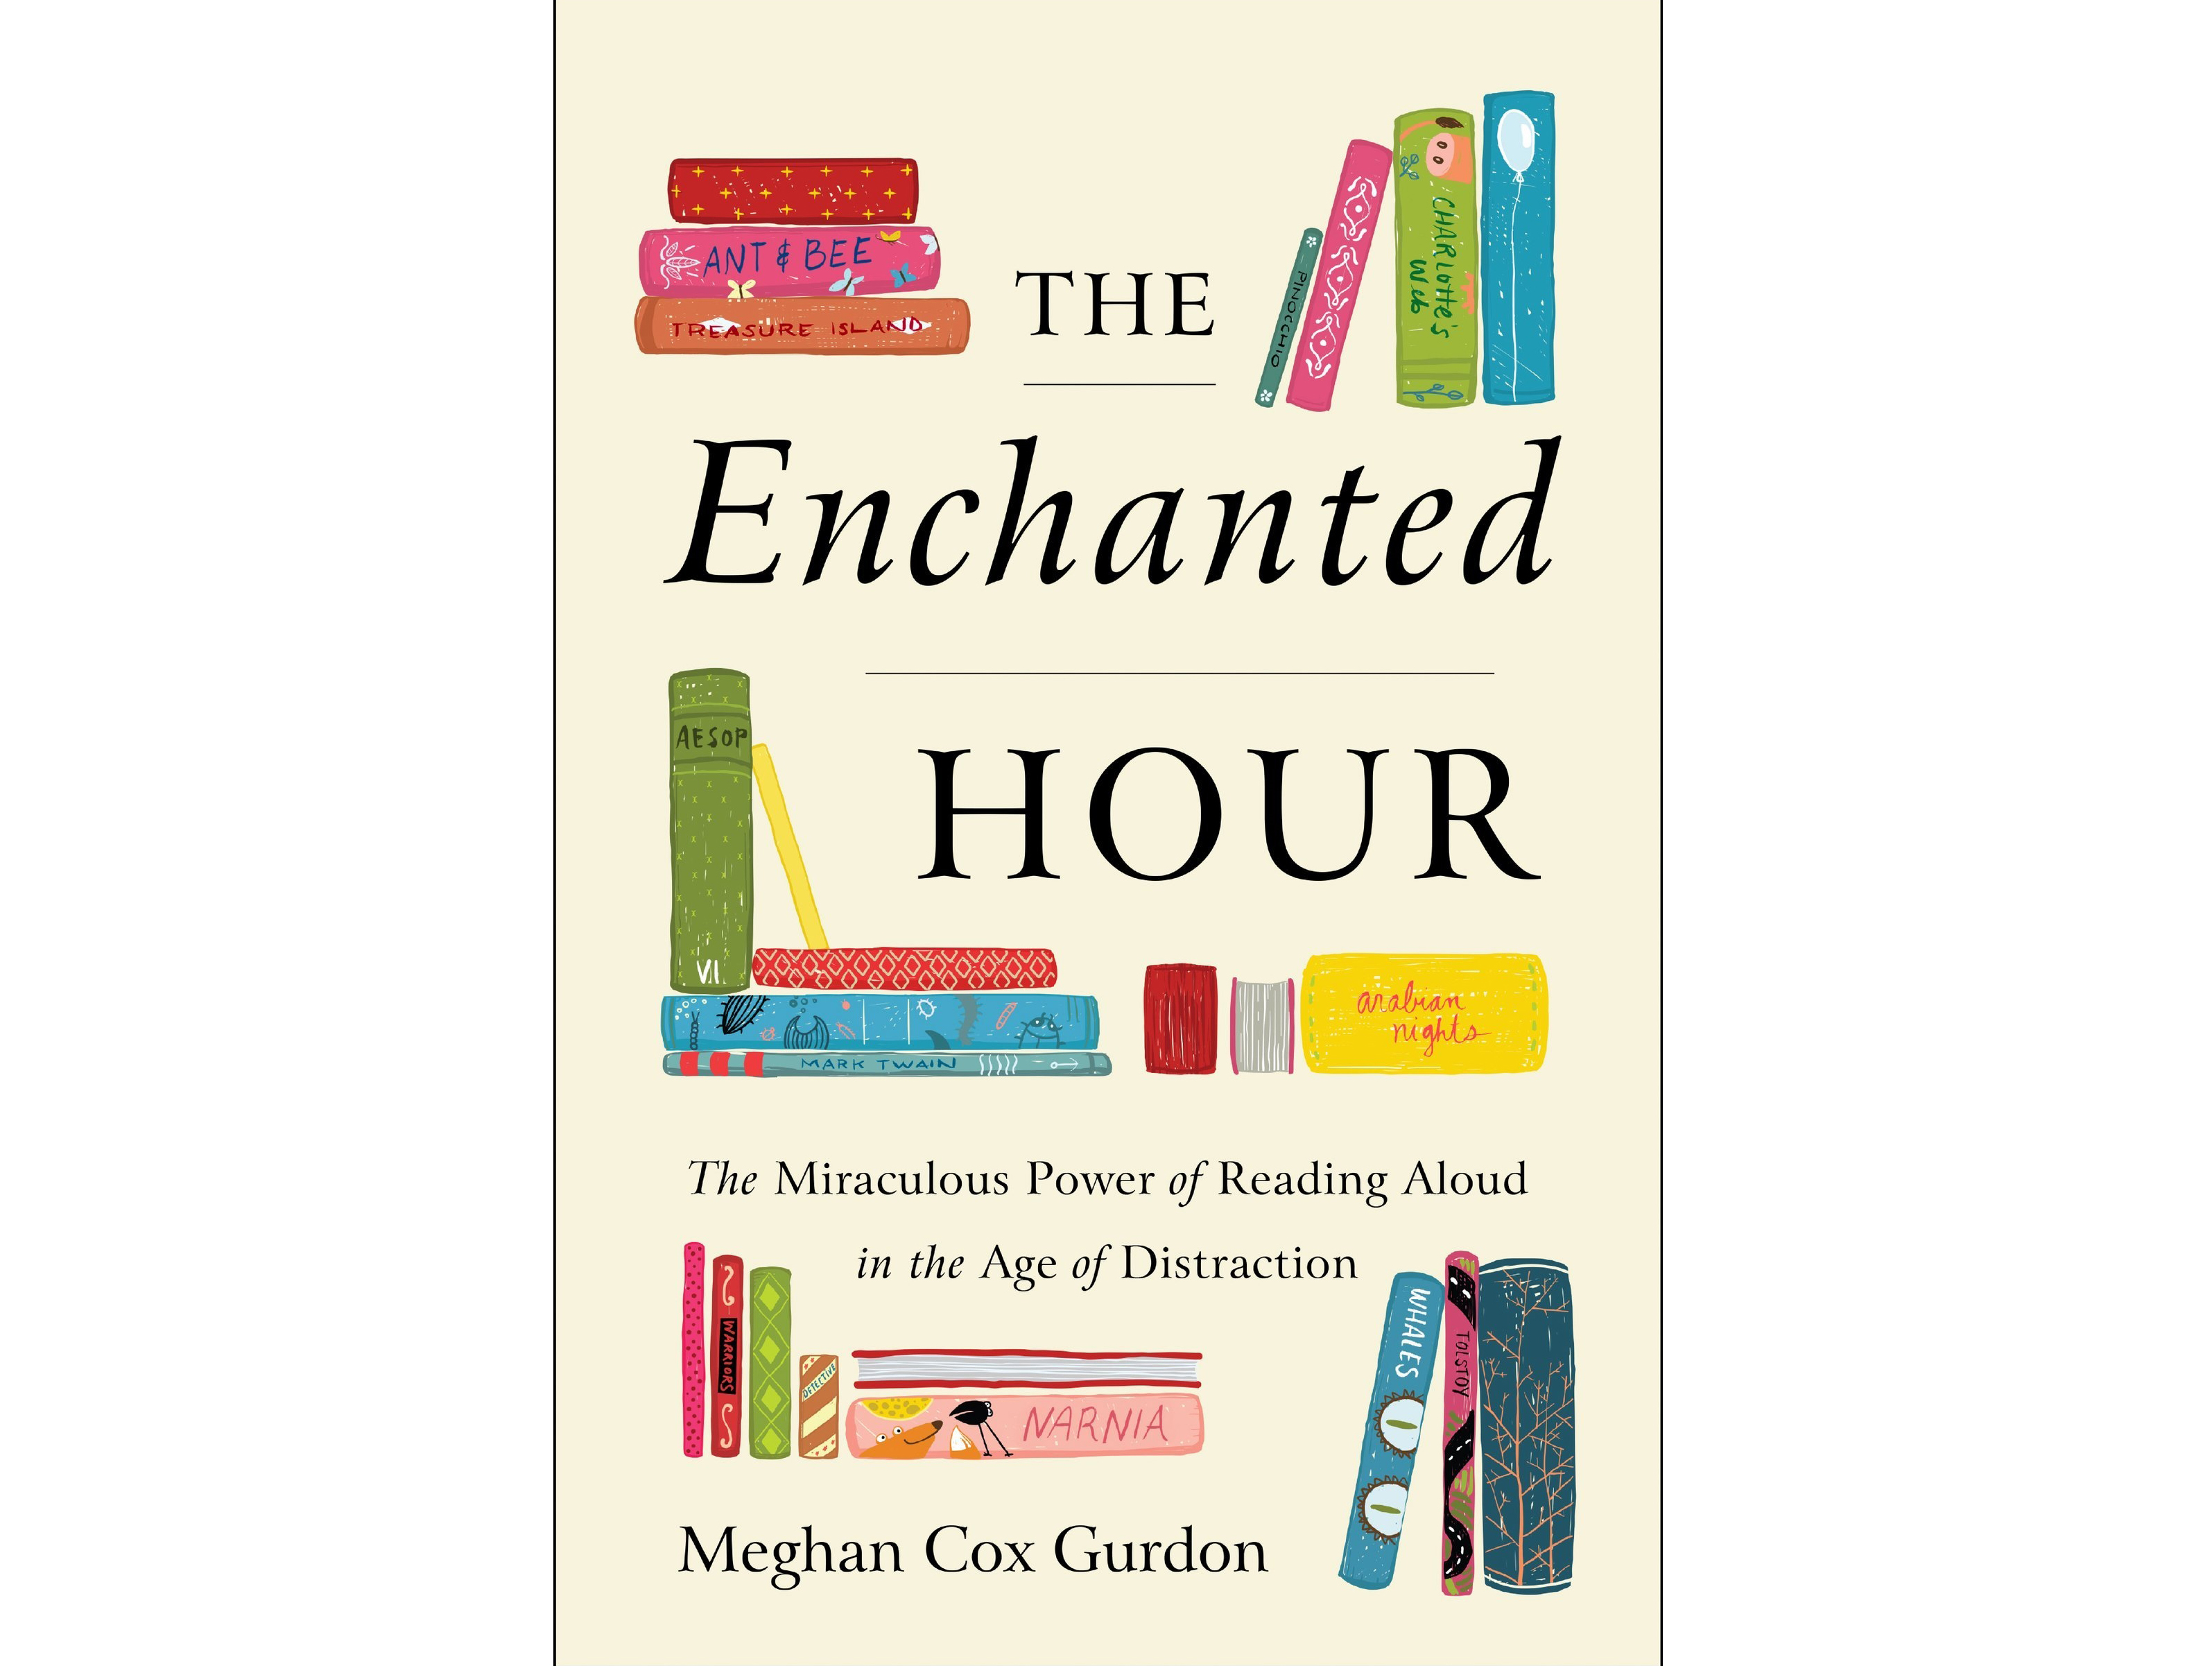 The Enchanted Hour – The miraculous power of reading aloud in the age of distraction by Meghan Cox Gurdon,(Piatkus/PA)